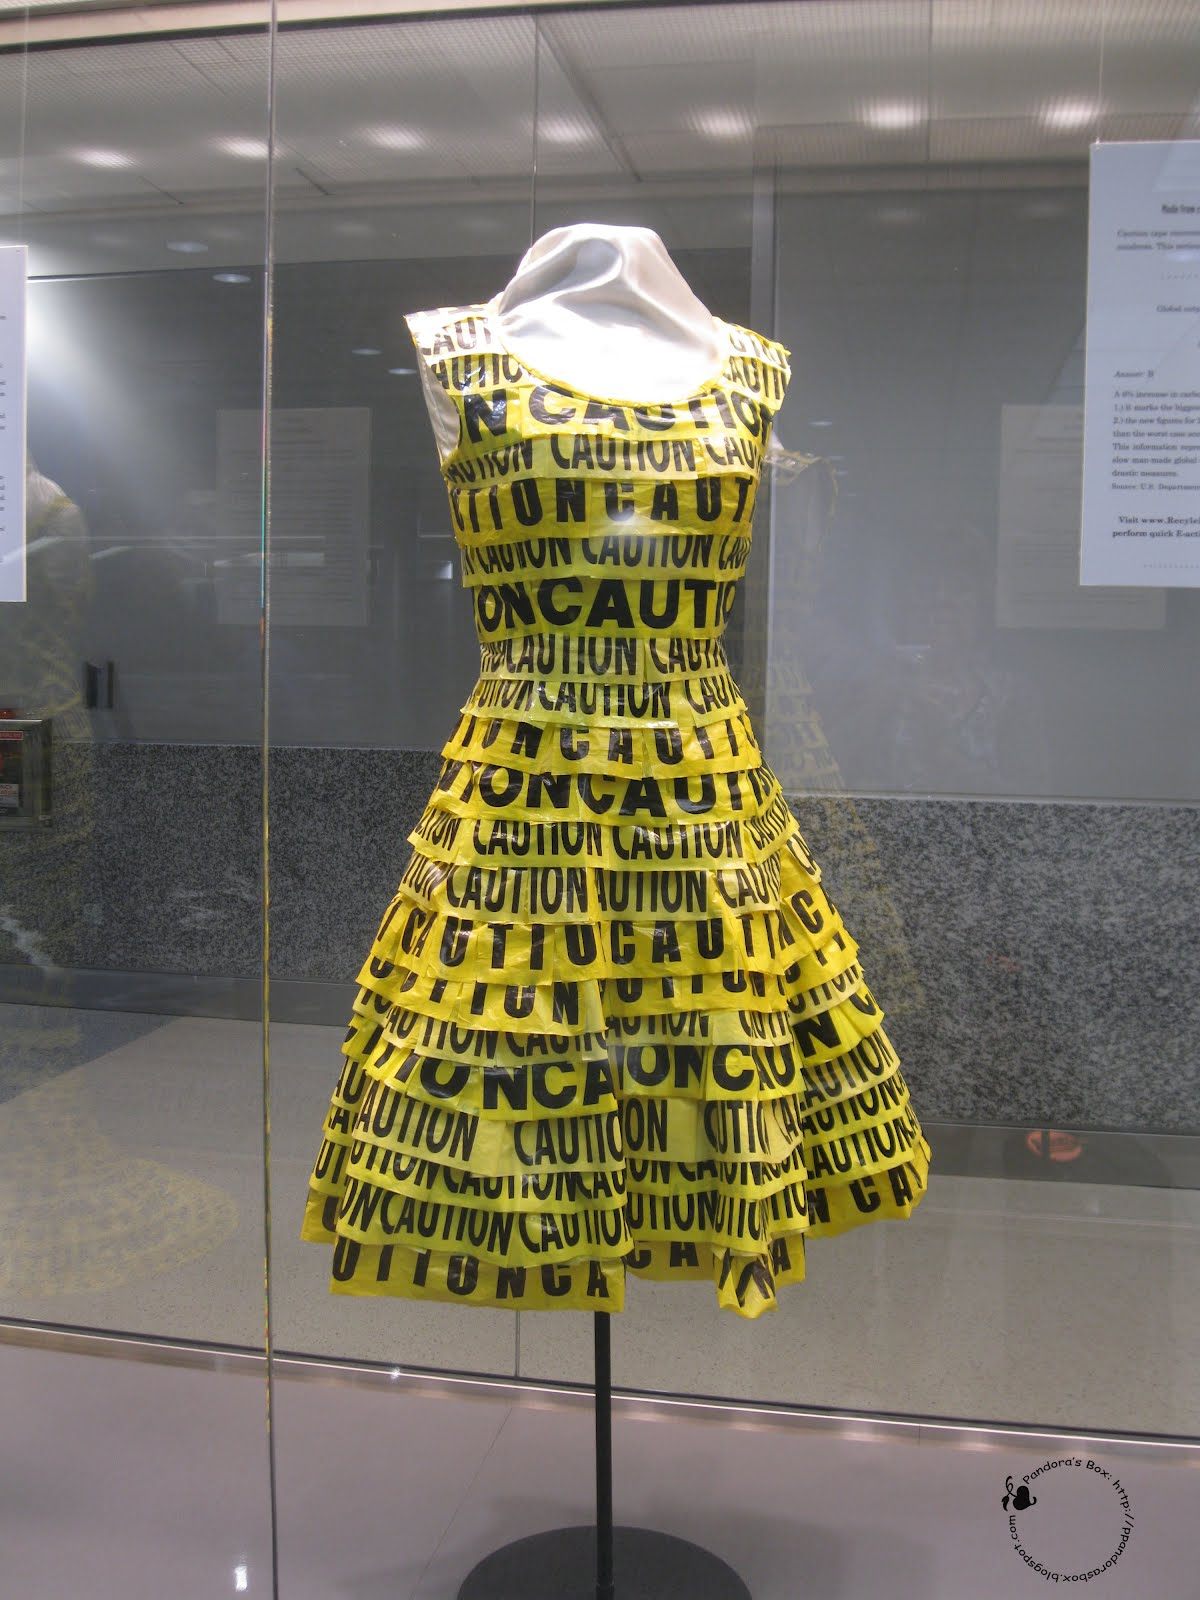 recycled materials recycle clothing items into runway clothes recycling dress project box dresses outfit things reuse textiles used pandora tape